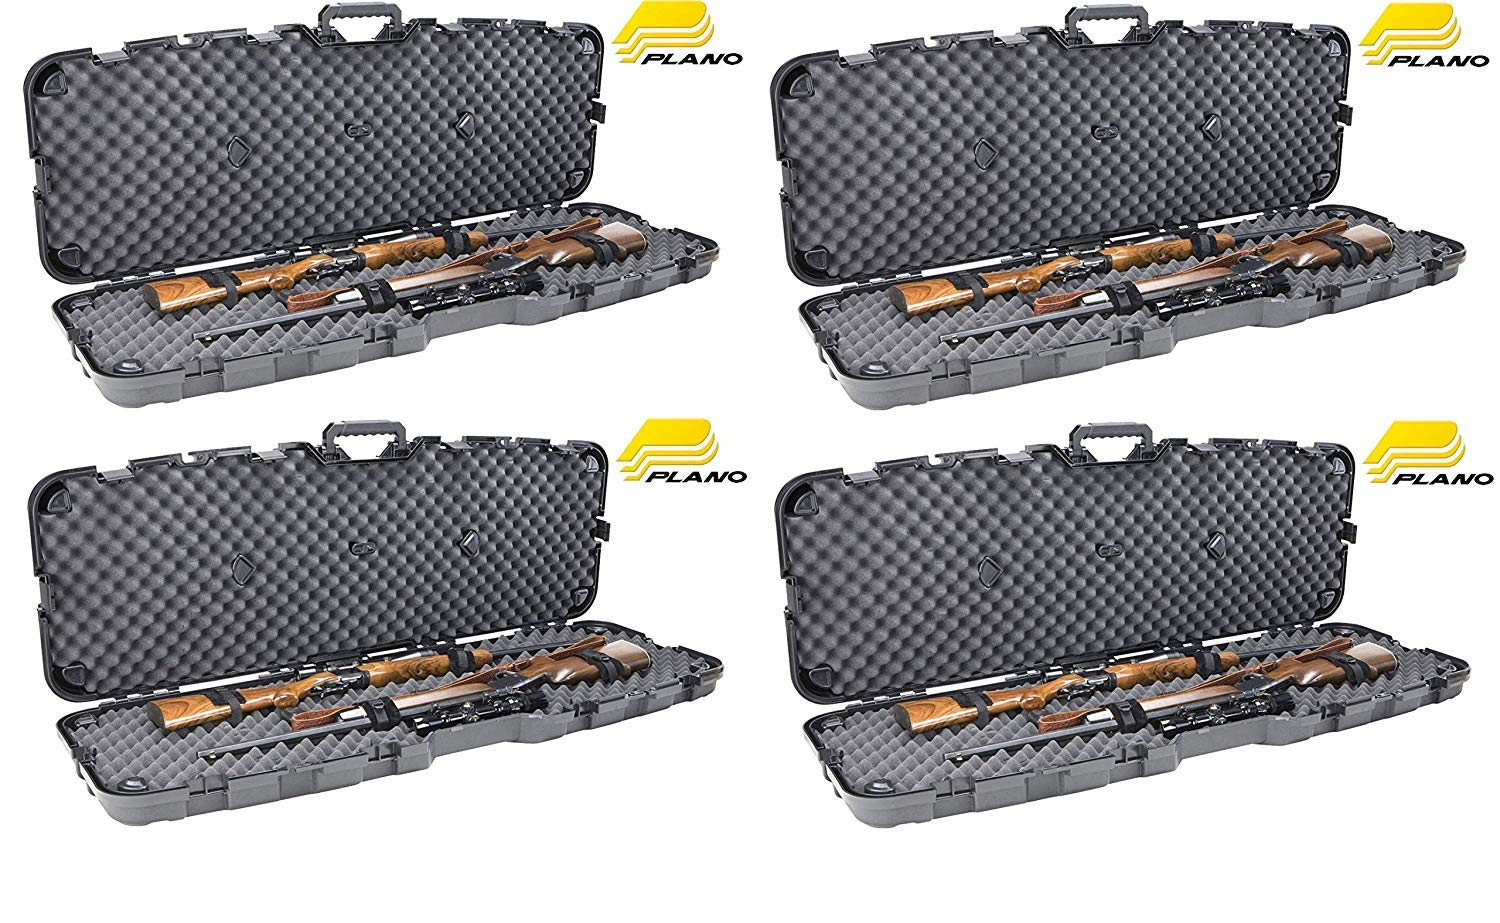 Plano Pro Max Double Scoped Rifle Case (Pack of 4) by Plano